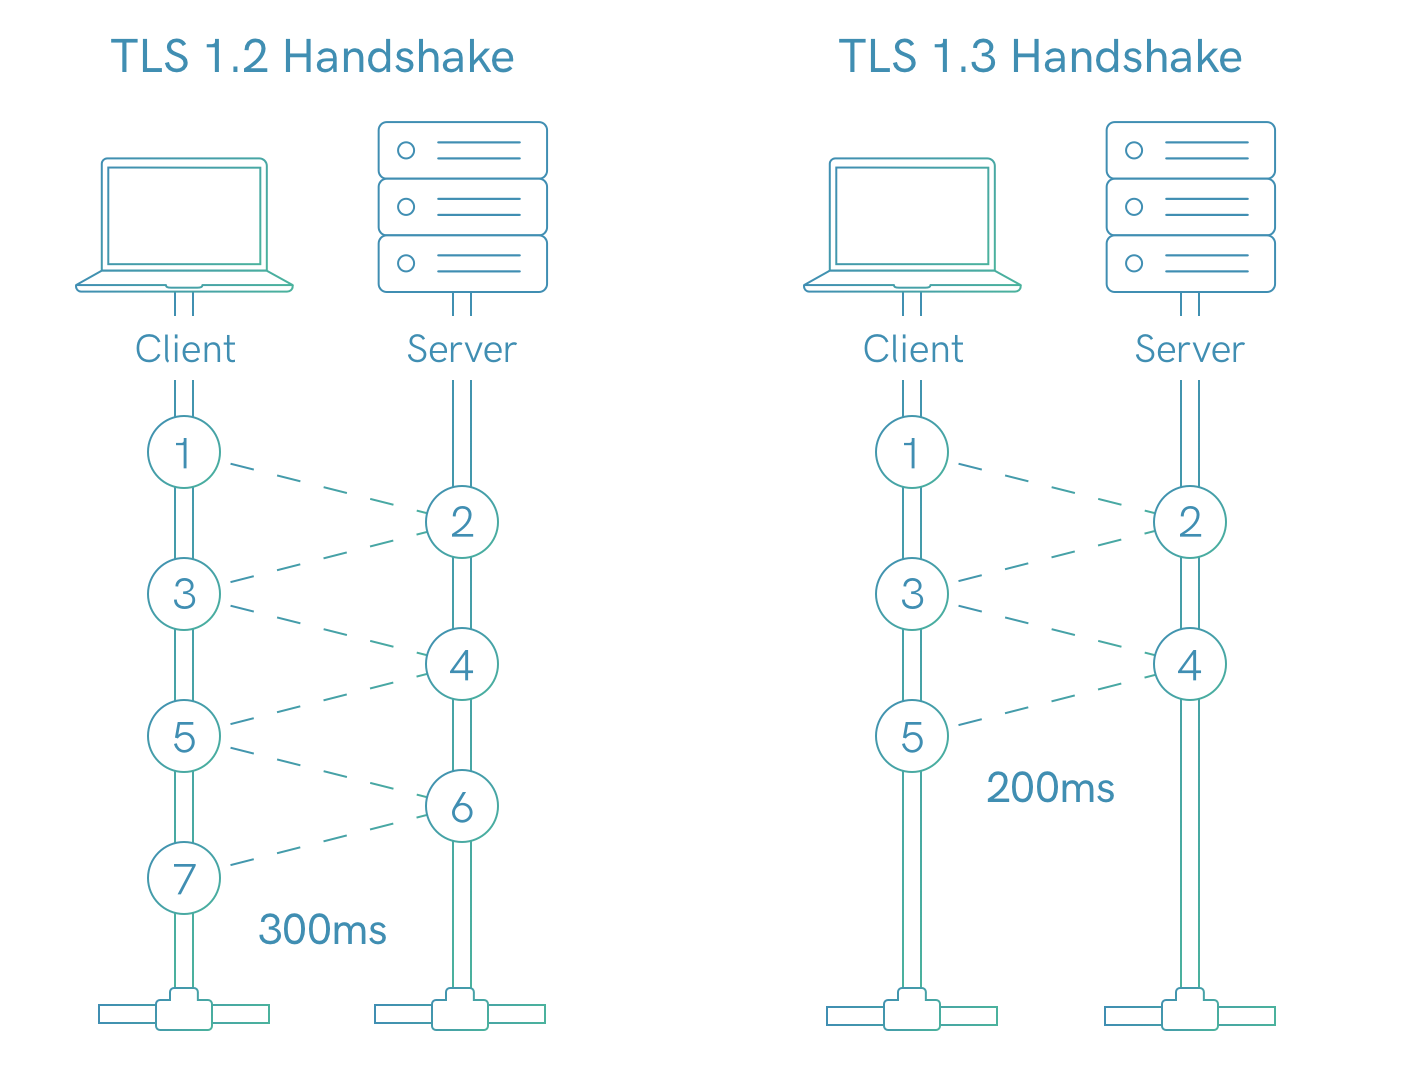 TLS handshake comparison